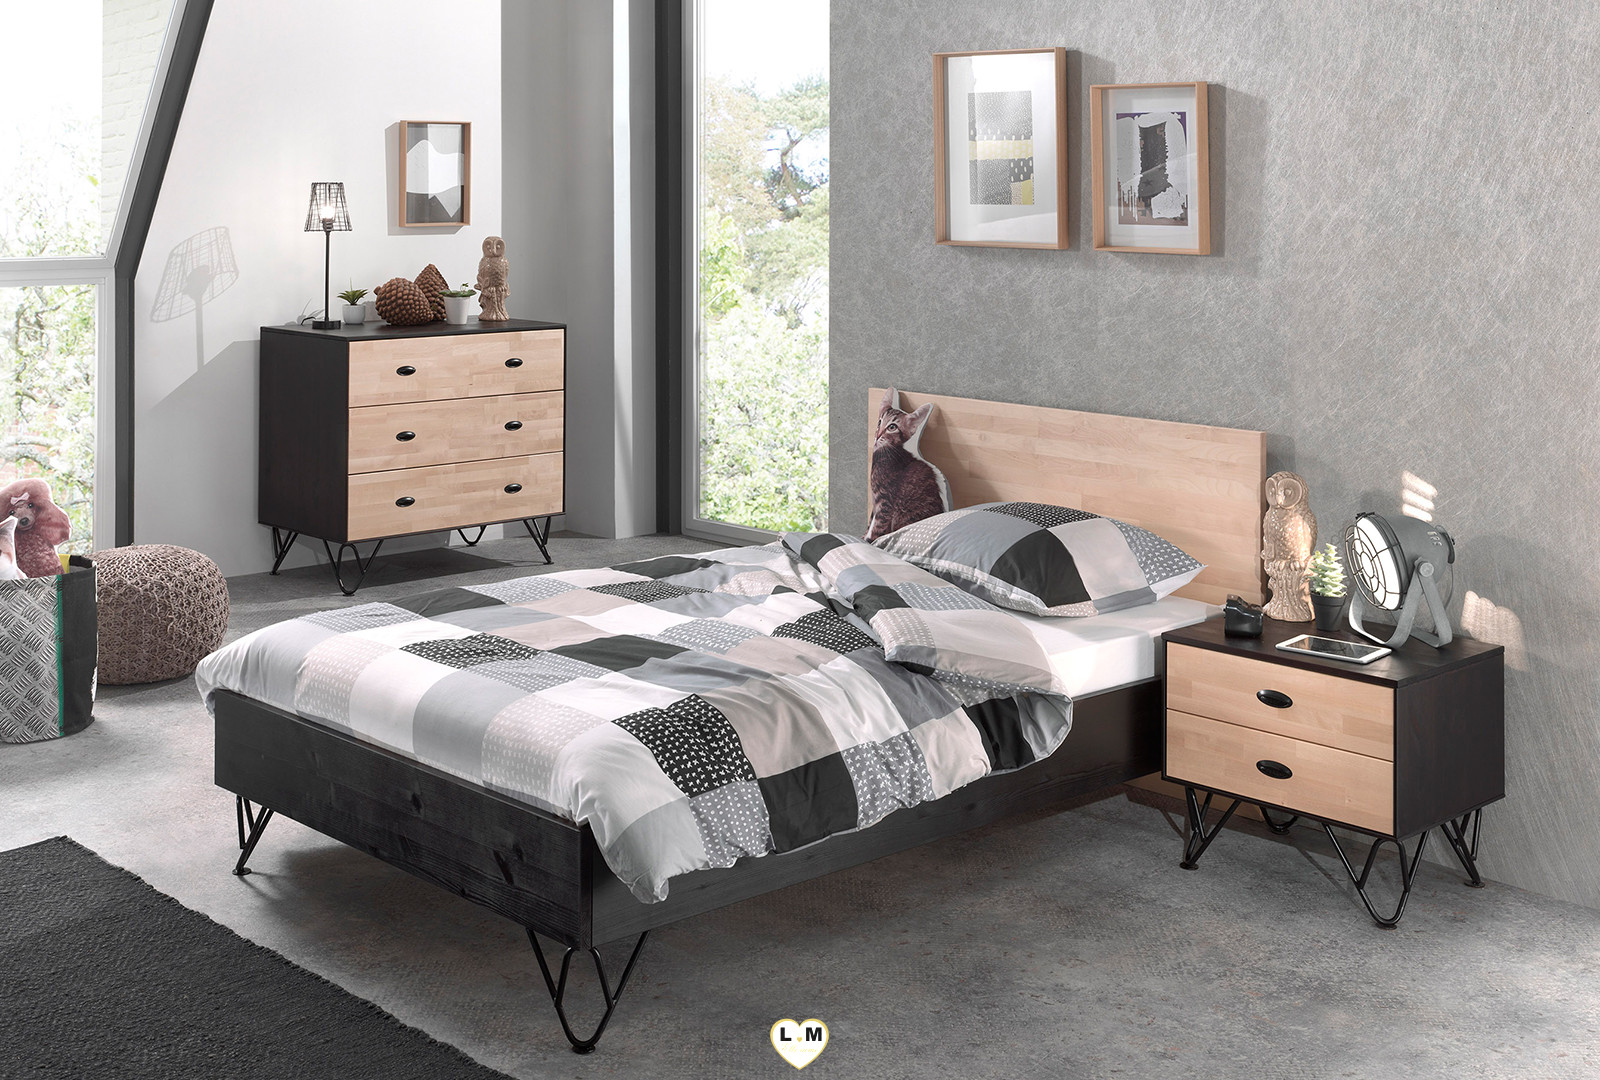 willy chambre ado le grand lit 120x200 lignemeuble com. Black Bedroom Furniture Sets. Home Design Ideas